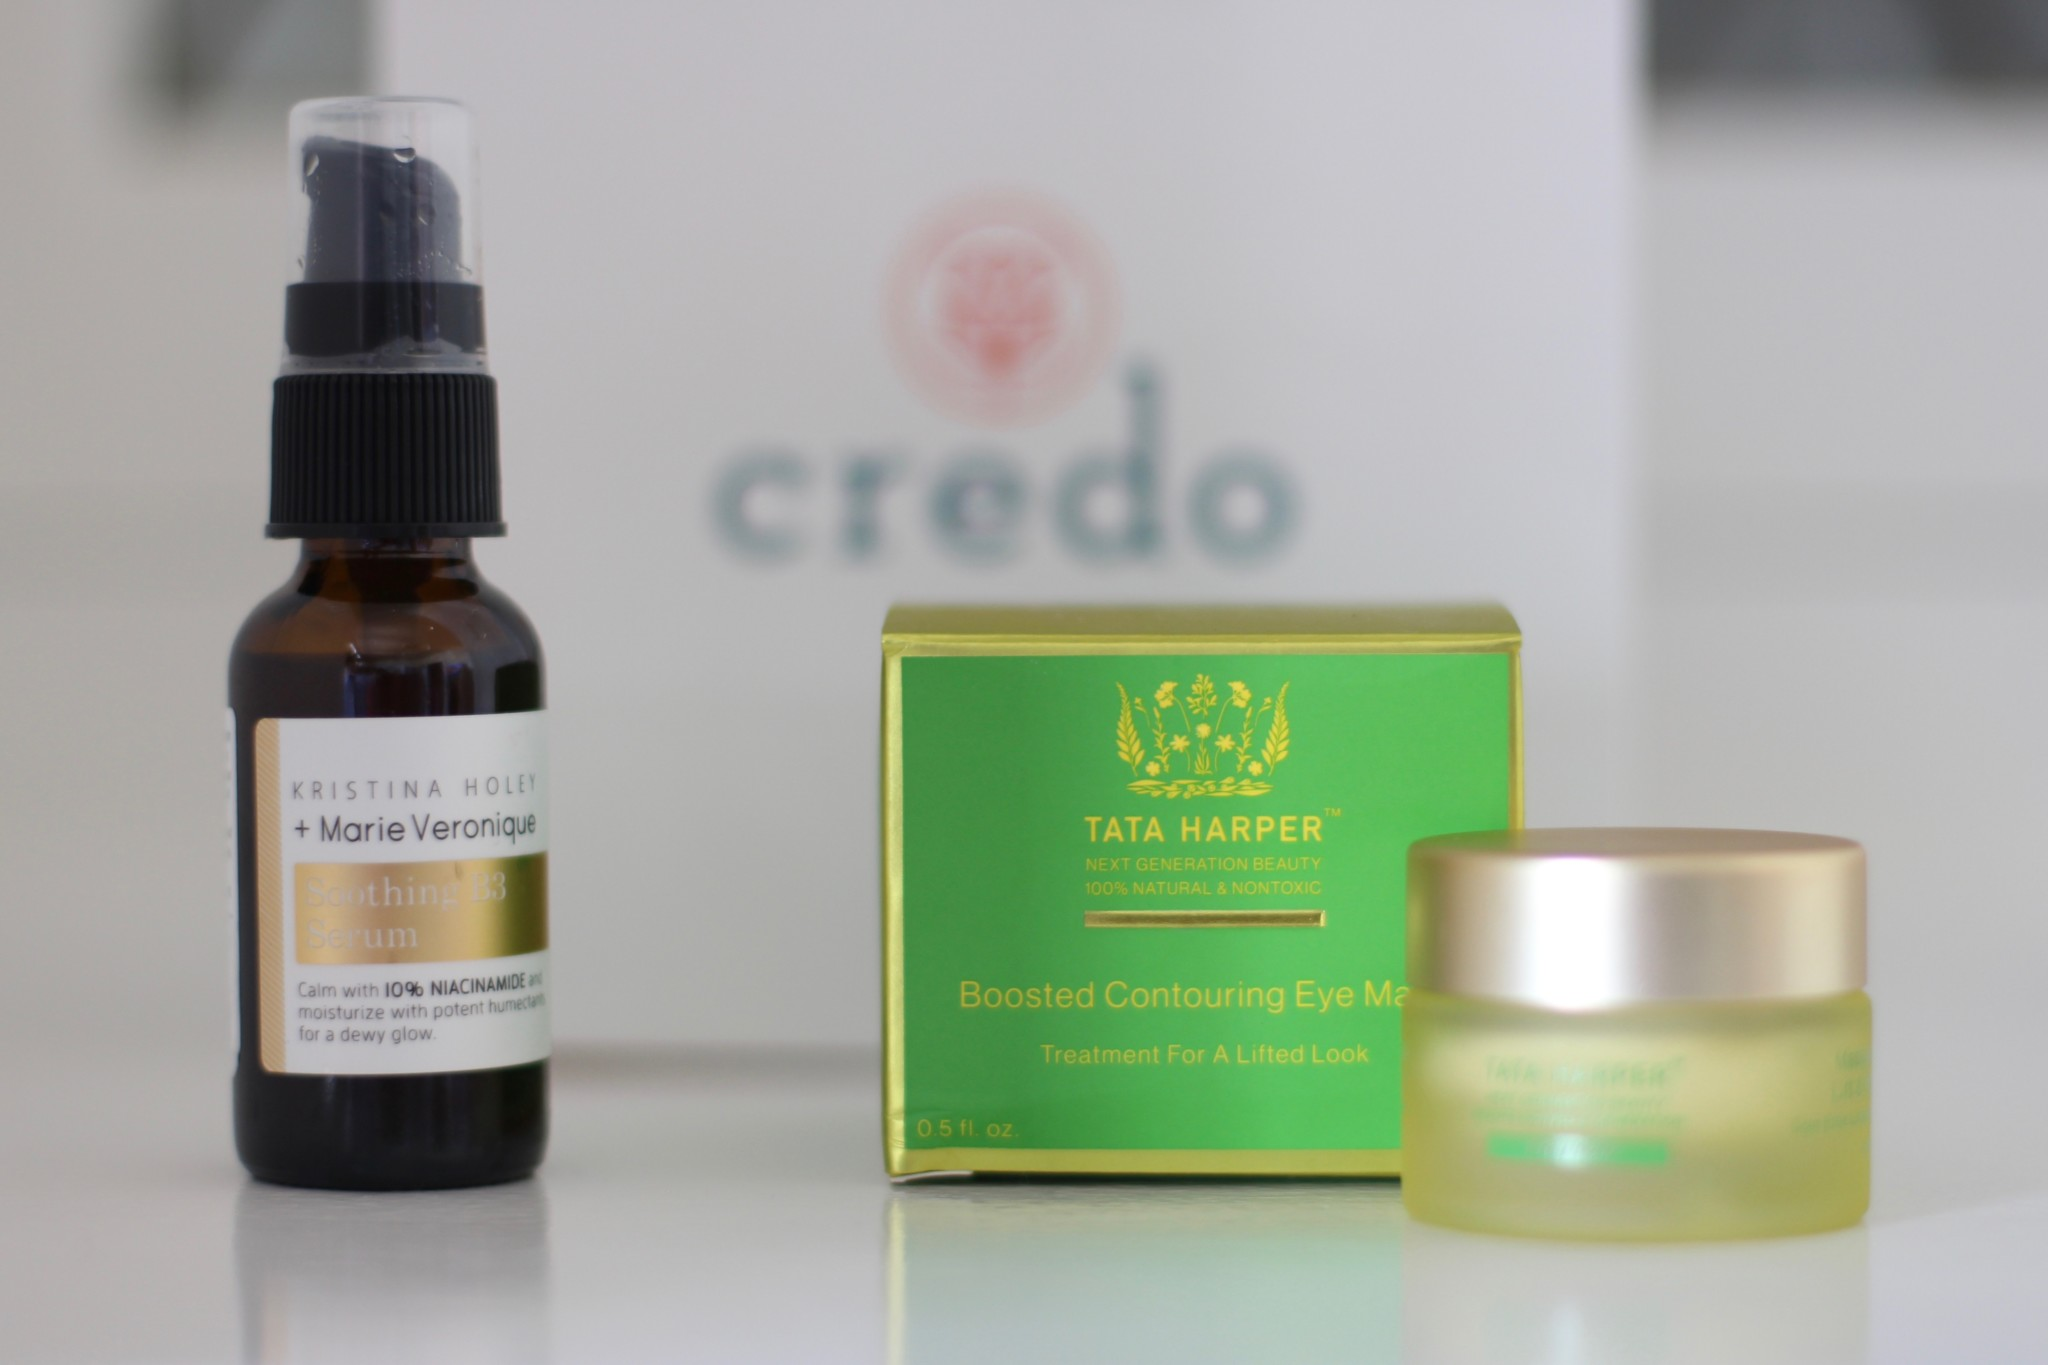 Credo Beauty   Marie Veronique Soothing B3 Serum   Tata Harper Boosted Contouring Eye Mask